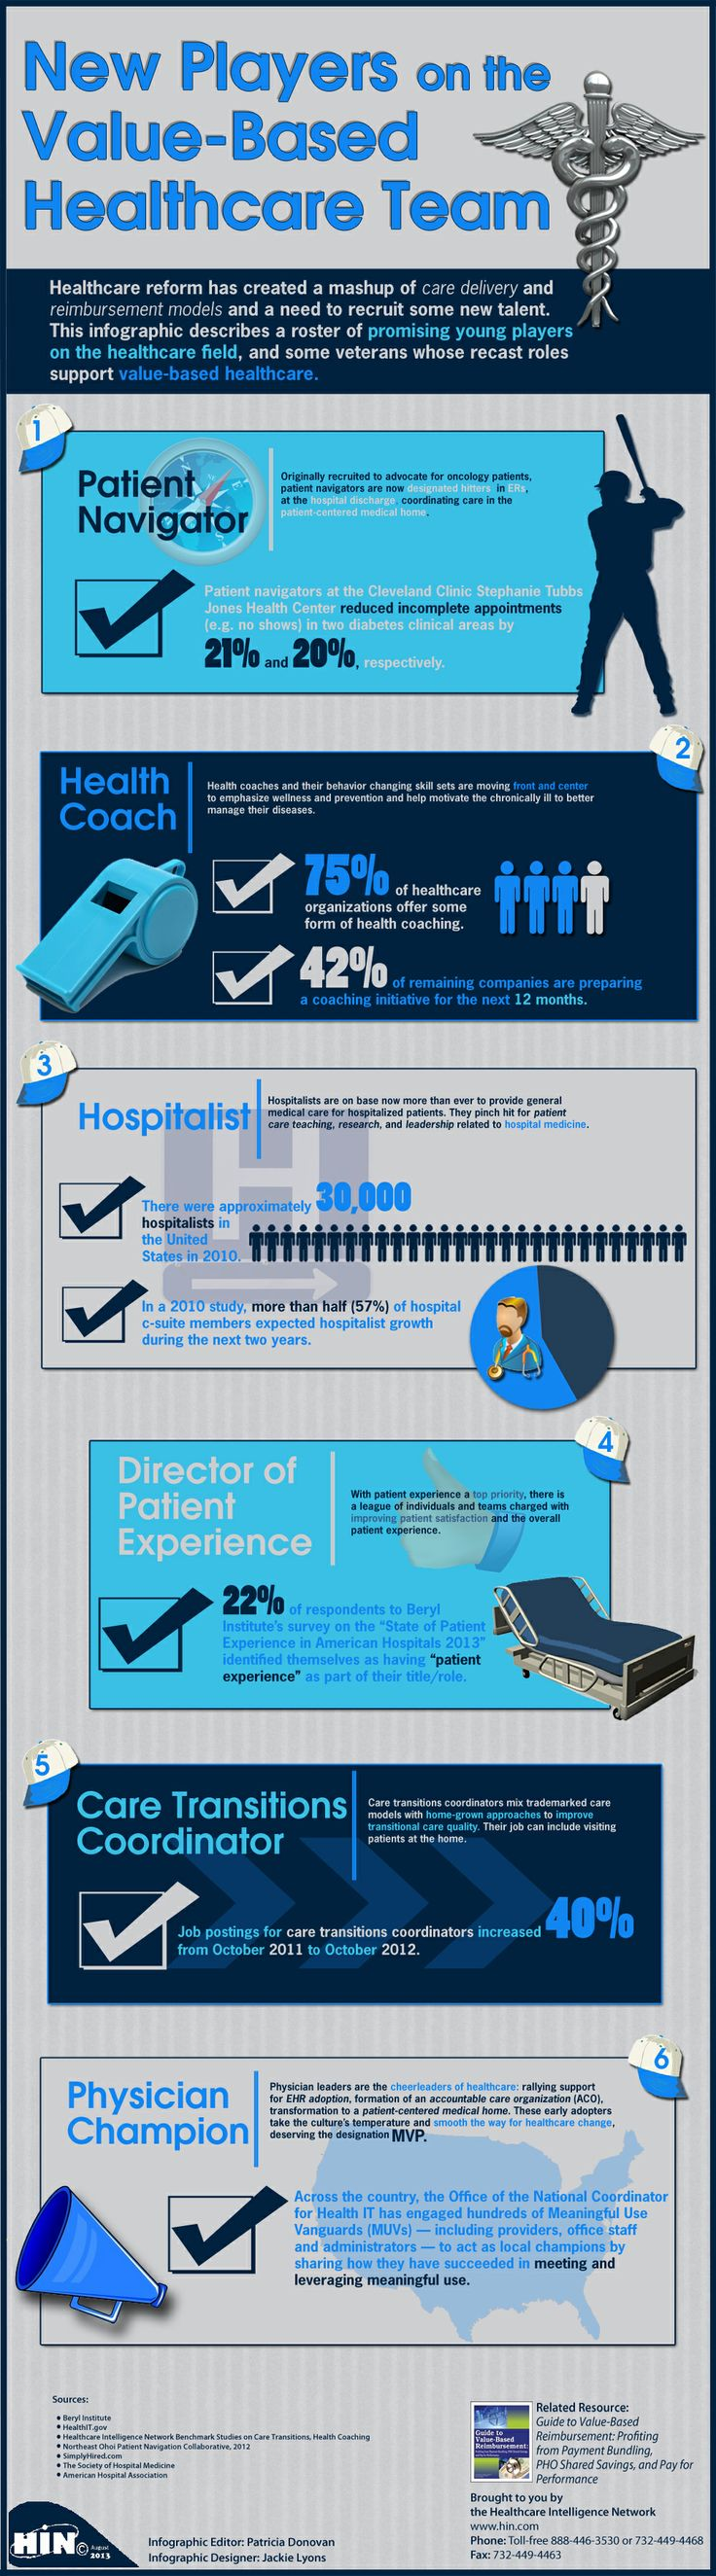 HINfographic: New Players on the Value-Based Healthcare Team | New Visions Healthcare Blog - www.healthcoverageally.com